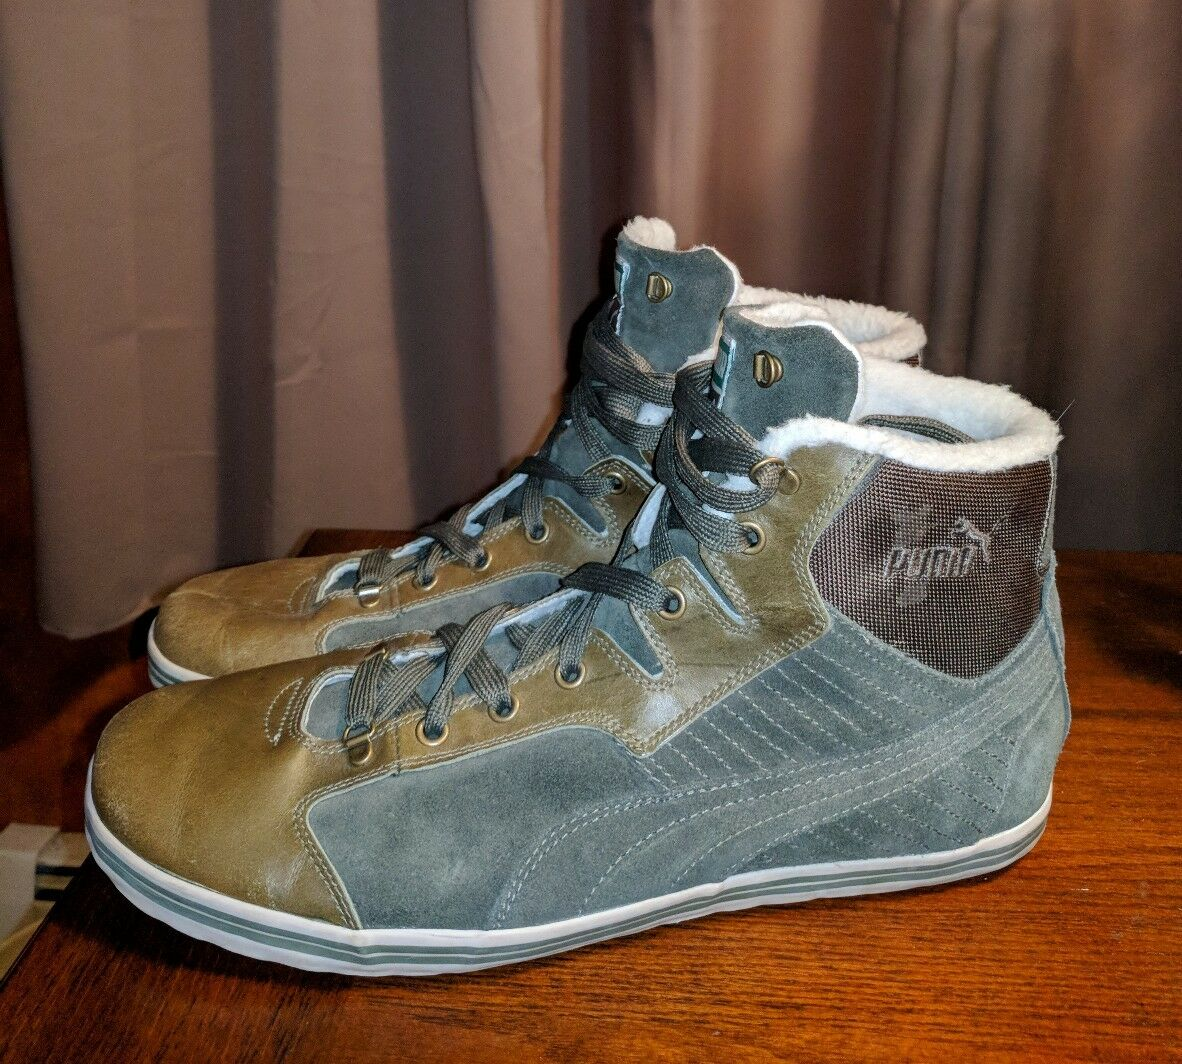 PUMA ARMY GREEN SUEDE LEATHER FLEECE LINED HIGH TOPS SNEAKERS 12 M